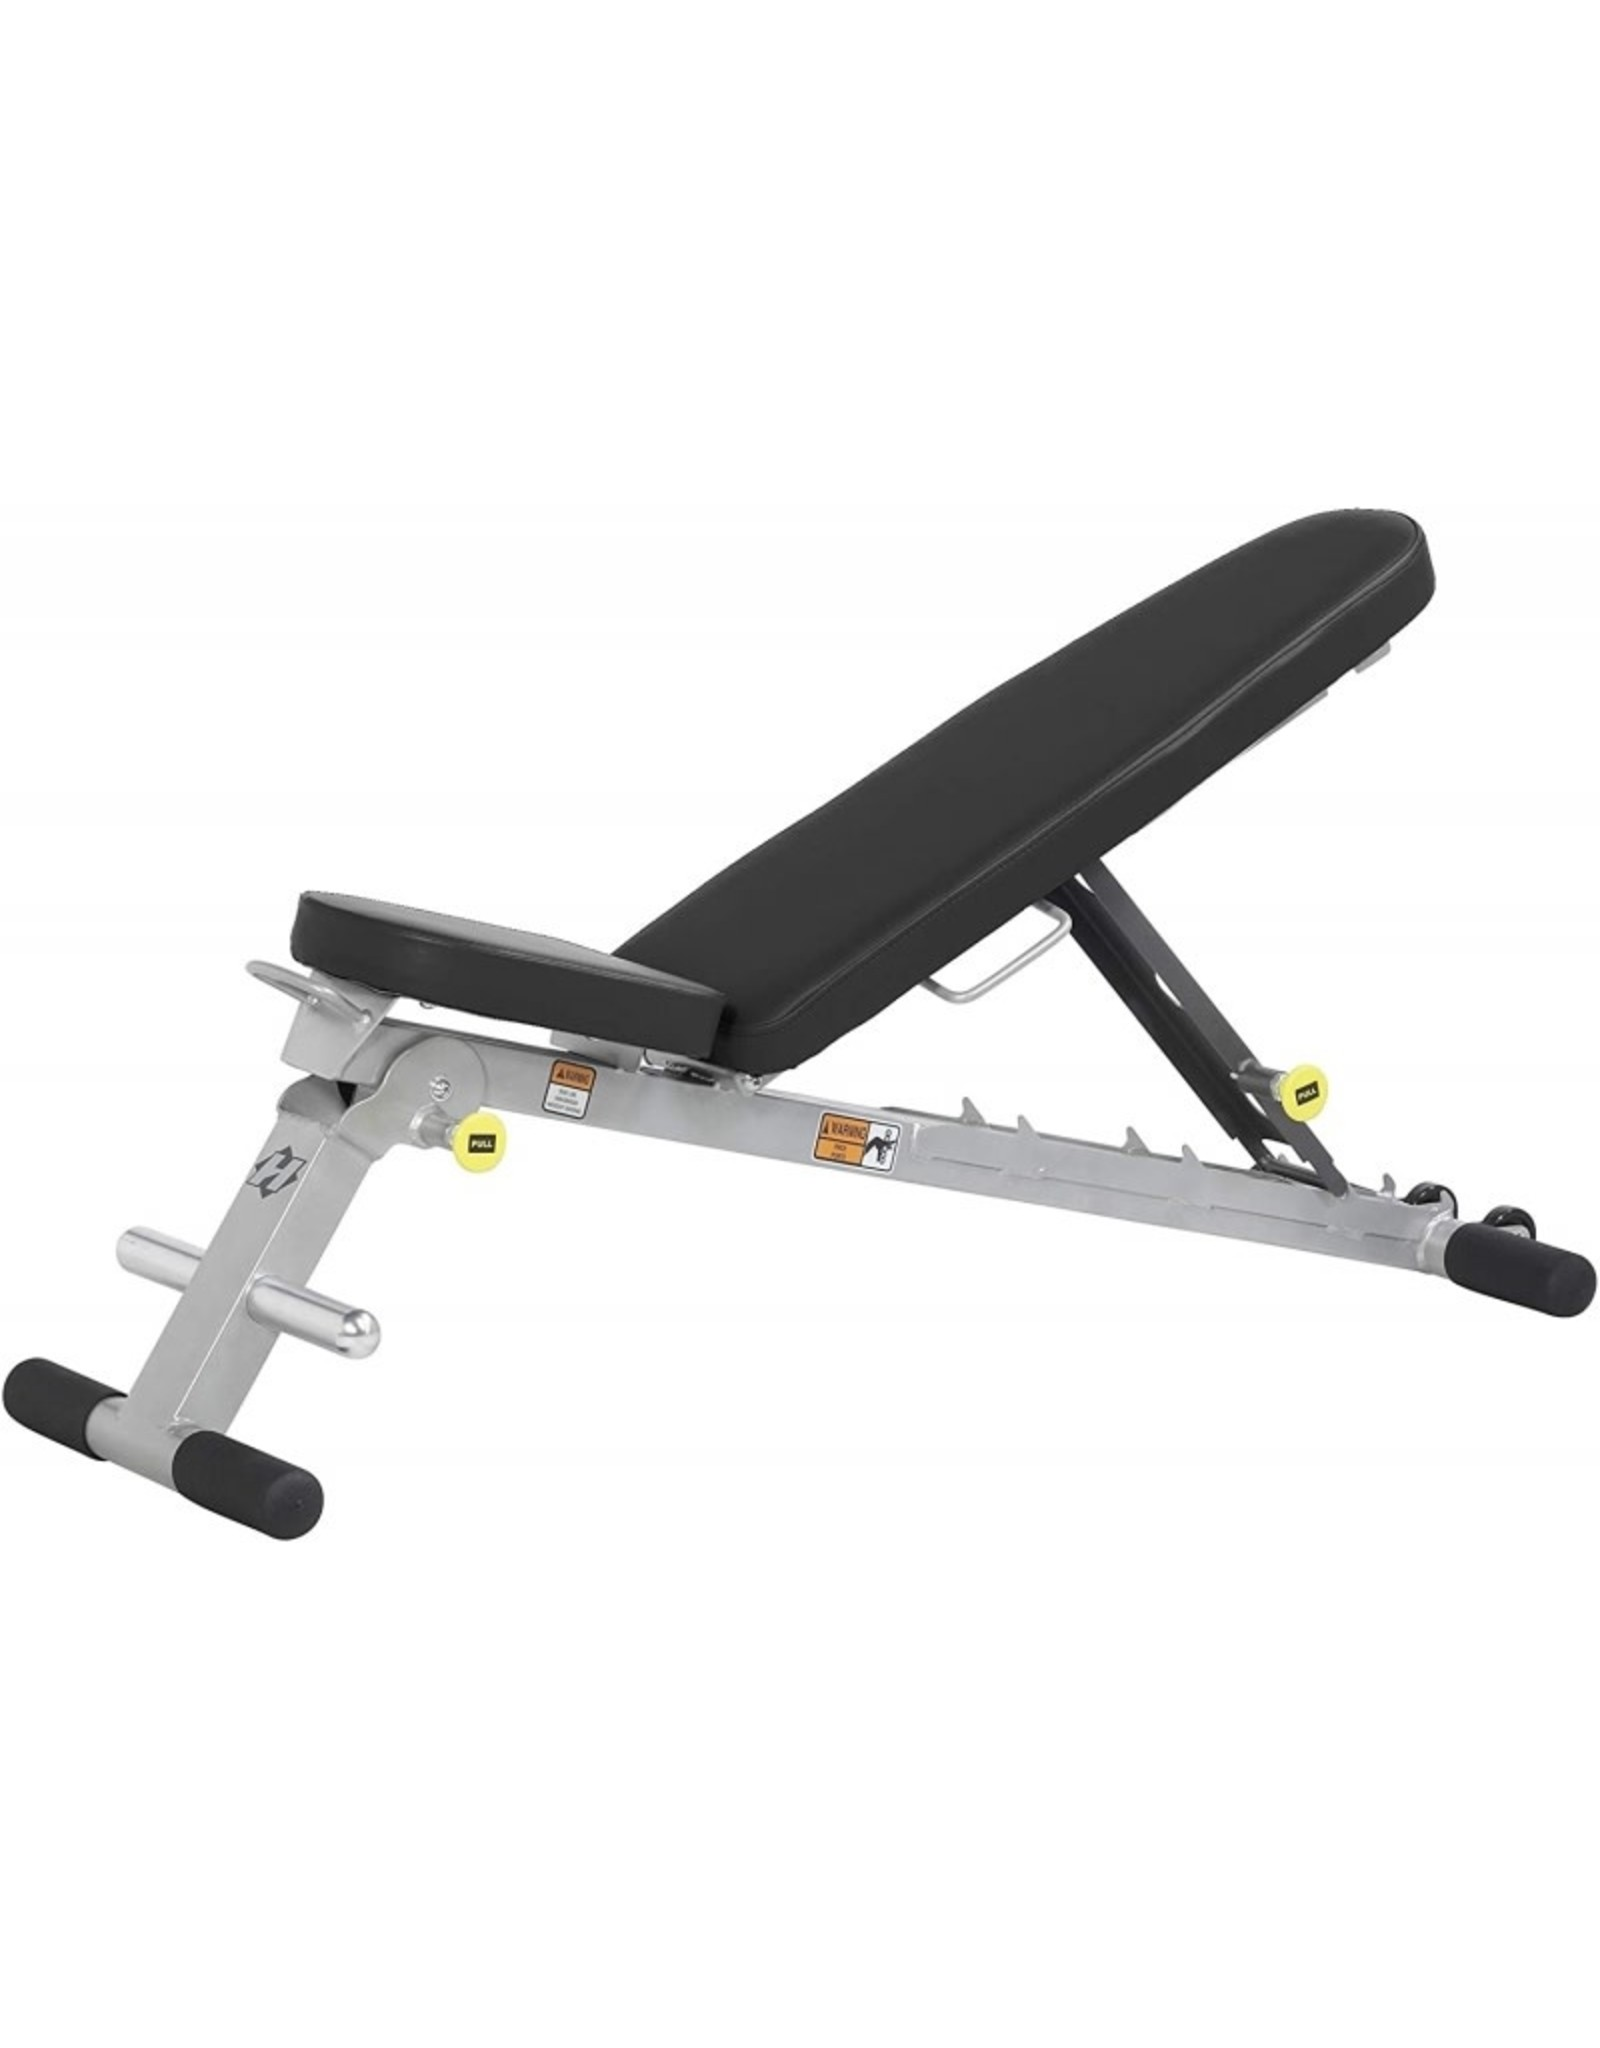 Hoist Hoist HF-4145 Folding Multi-Position Workout Ladder Bench